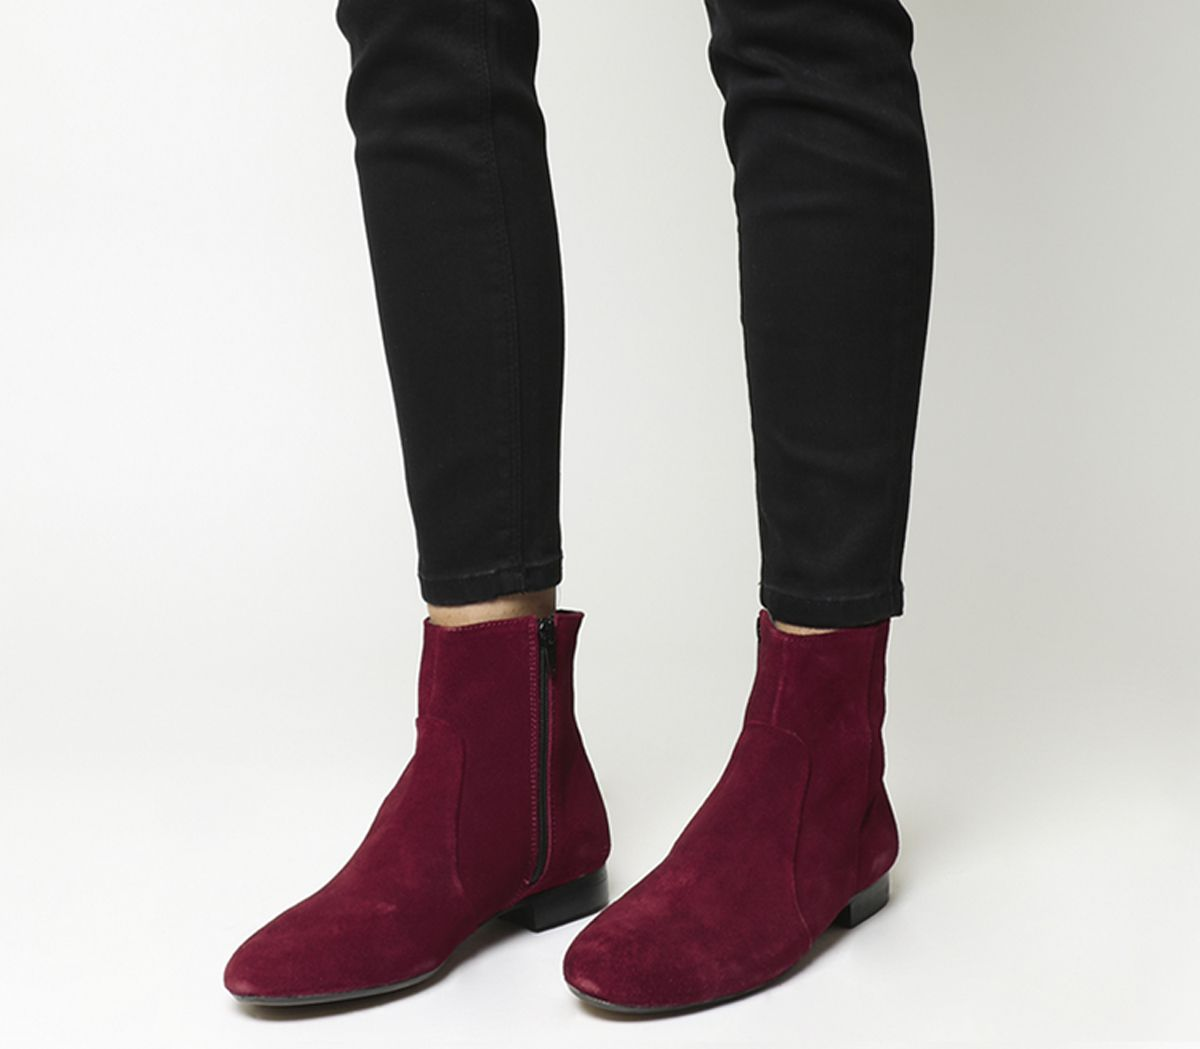 2441150e30d68 Office Avenue Flat Casual Boots Red Suede - Ankle Boots